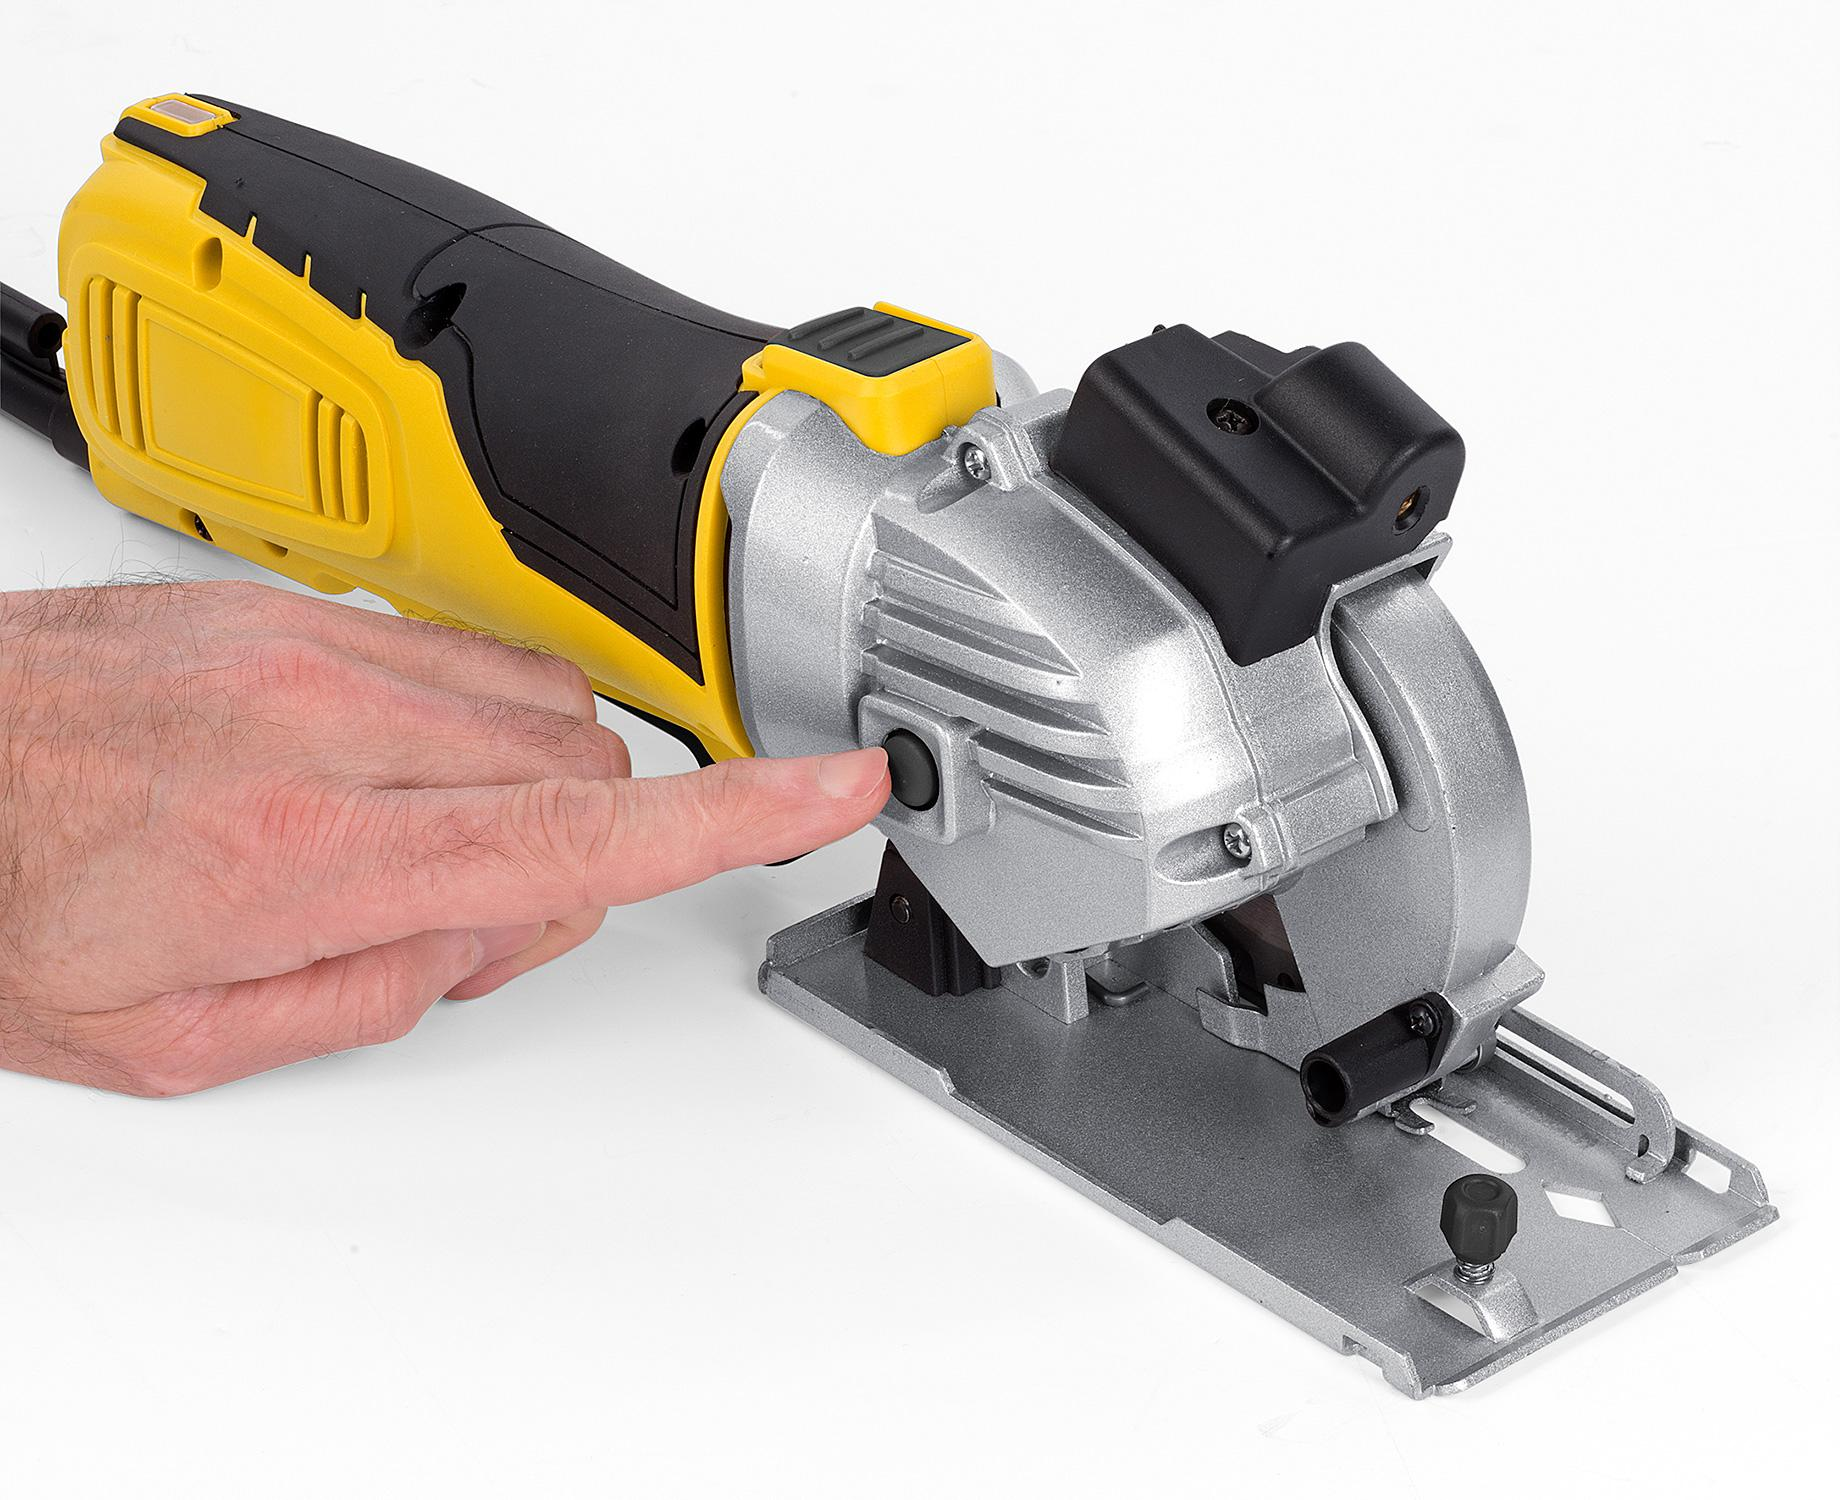 Can You Cut Ceramic Tile With A Skill Saw